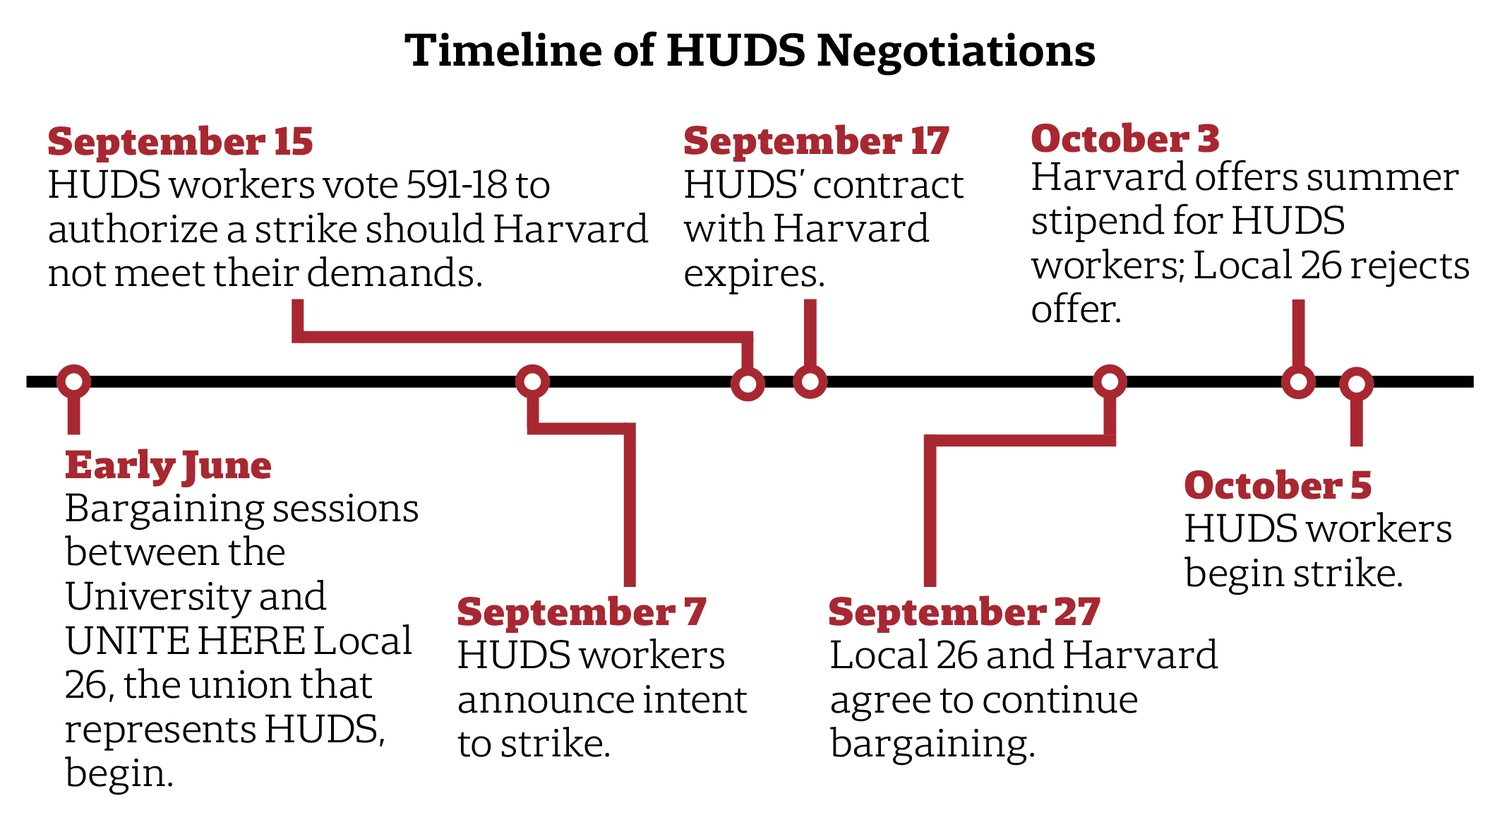 Timeline of HUDS Negotiation